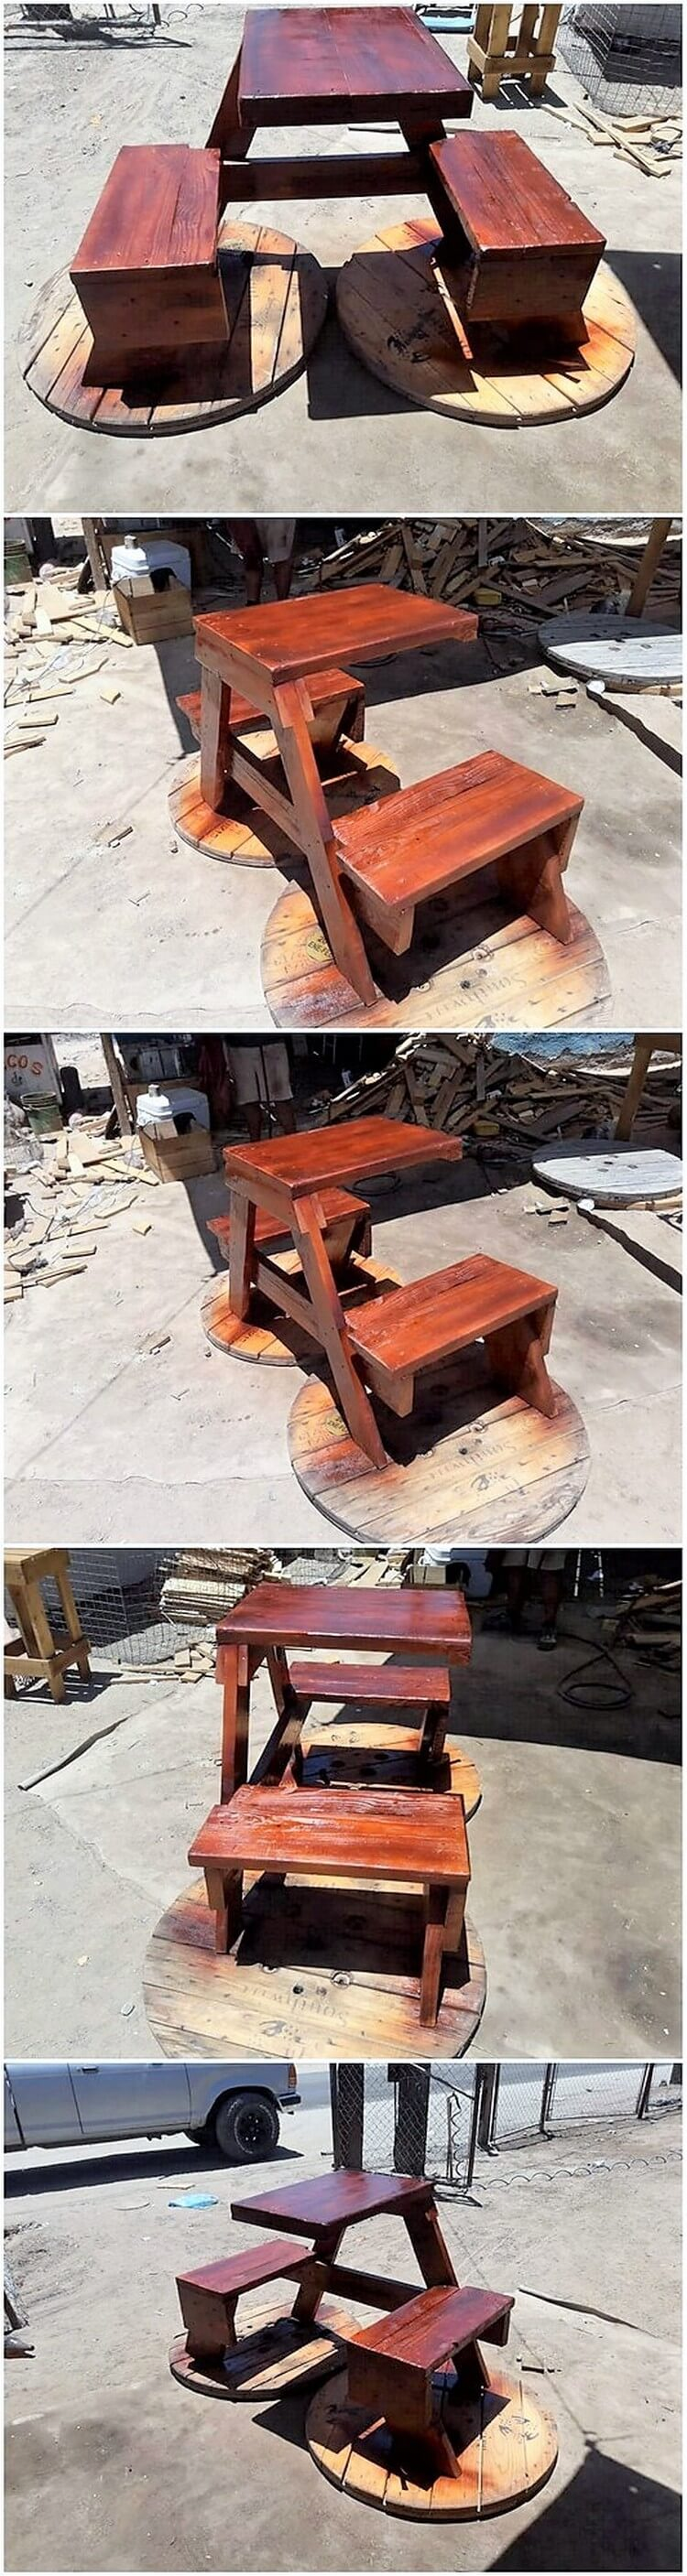 Pallet Outdoor Table with Benches